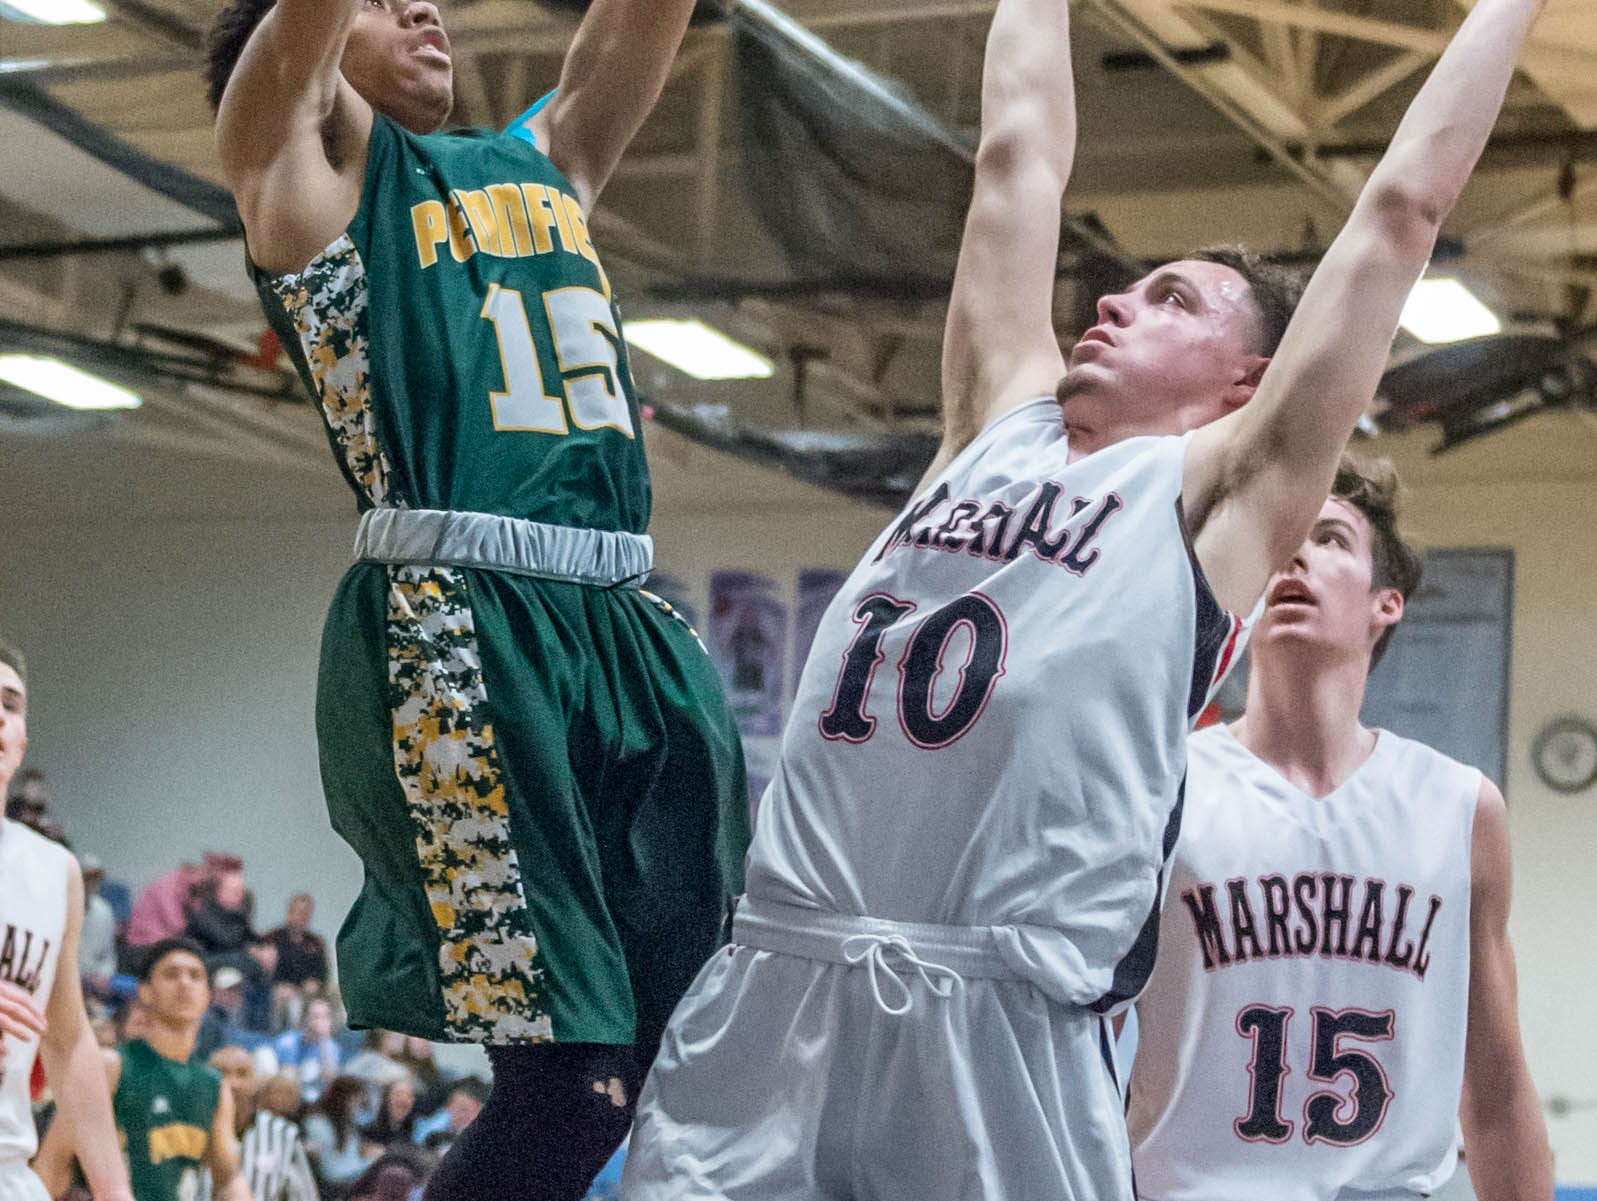 Pennfield's Domonick Gibson (15) goes for the hoop over Marshall's Jacob Brubacker (10) during Monday's district game.